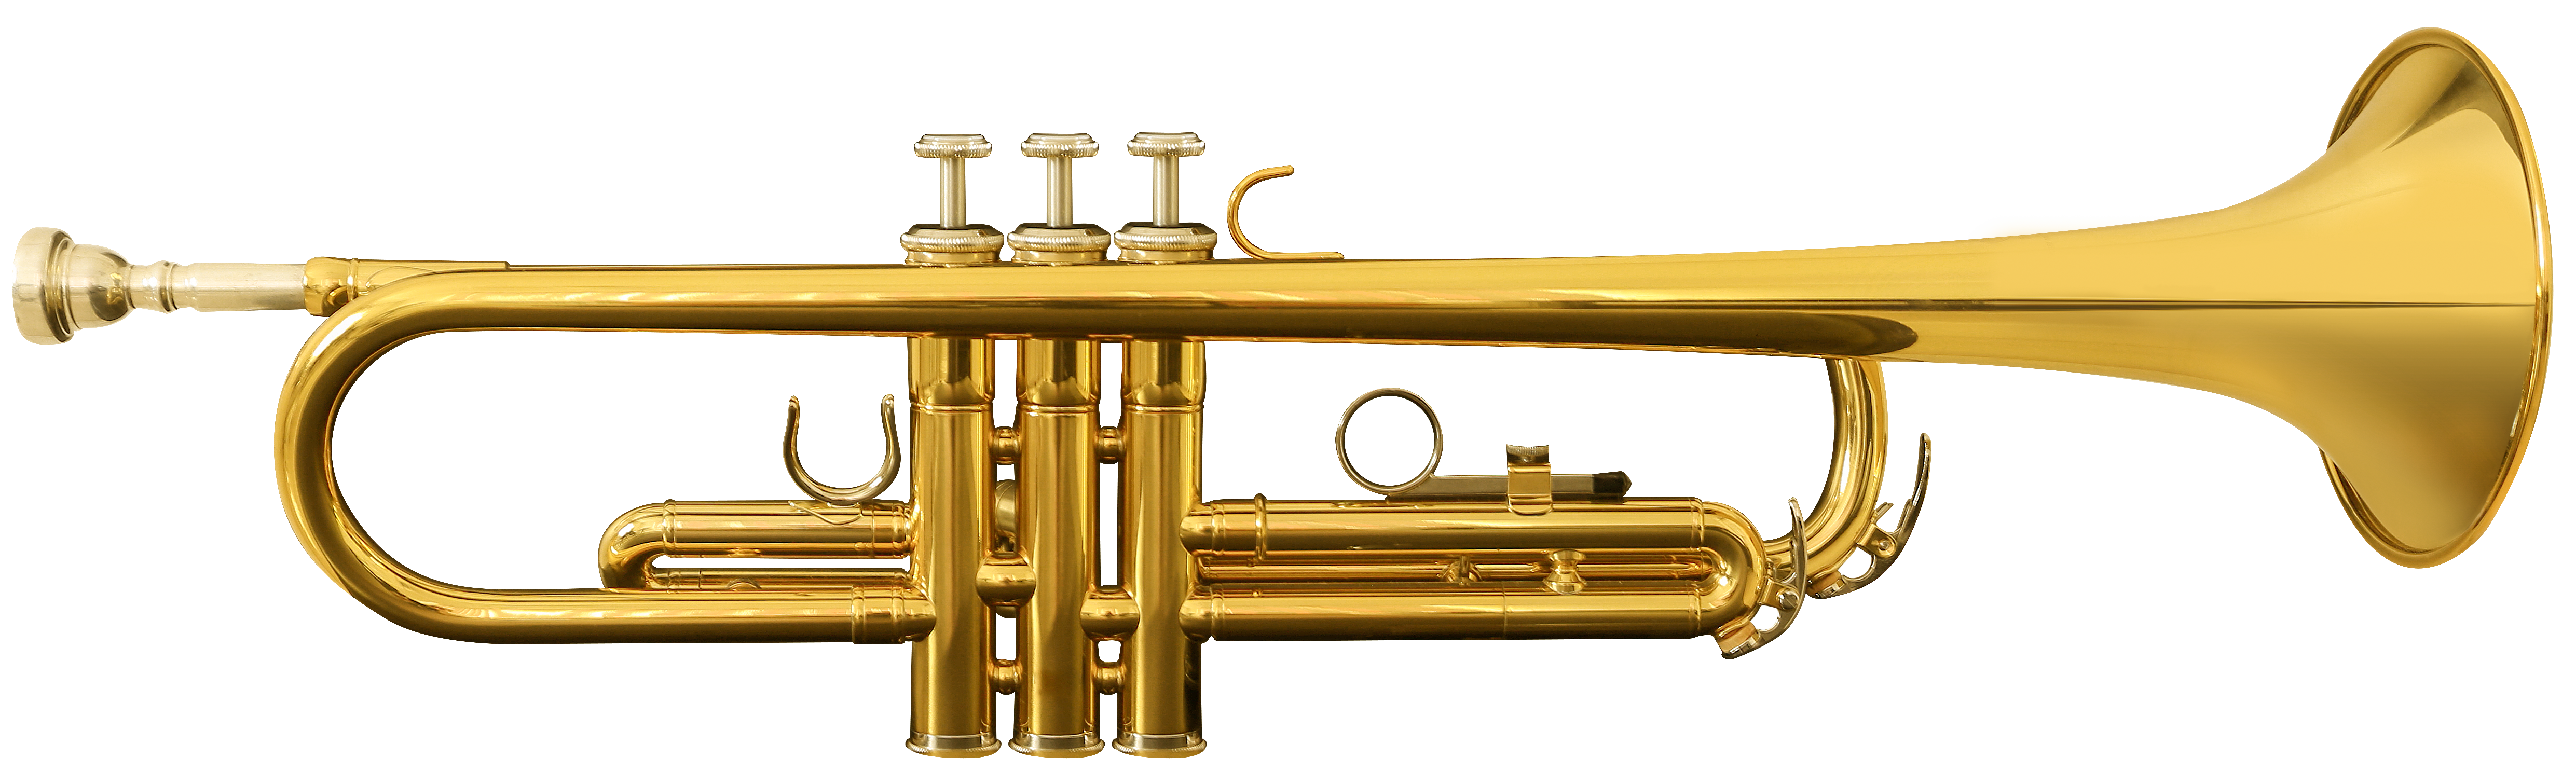 trumpet transparent clip art image gallery yopriceville high quality images and transparent #29504